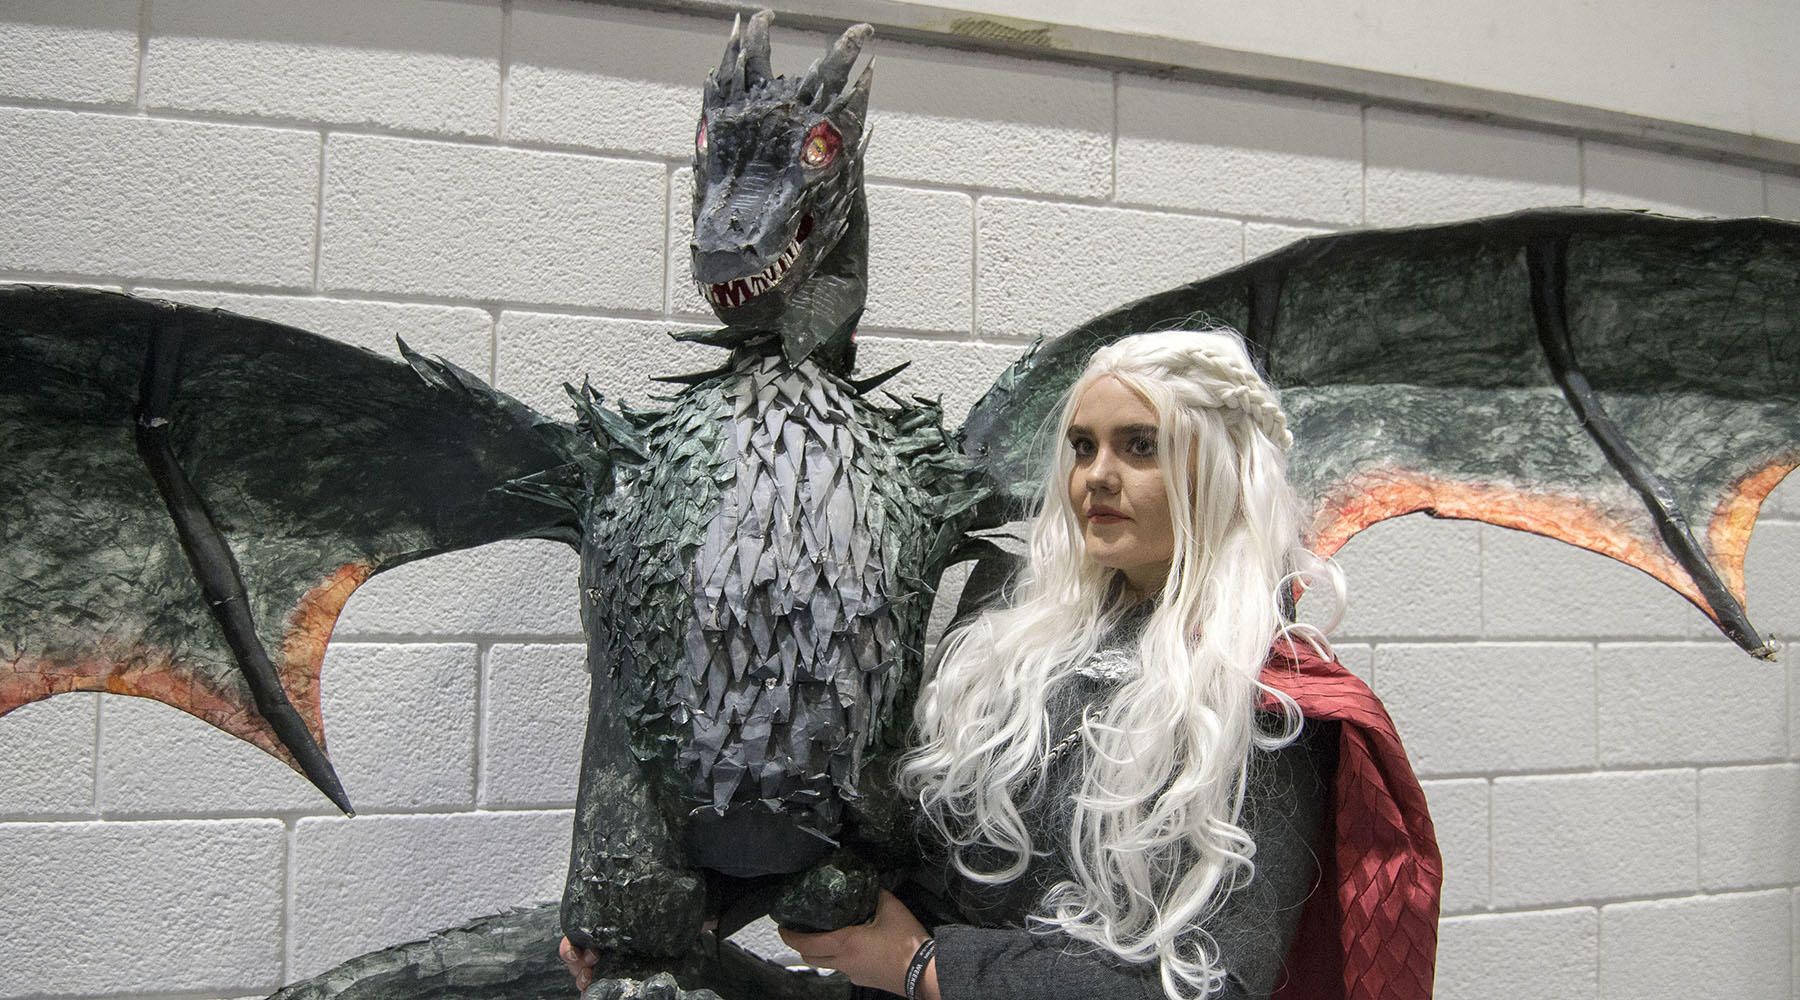 This London cosplayer with a rad puppet